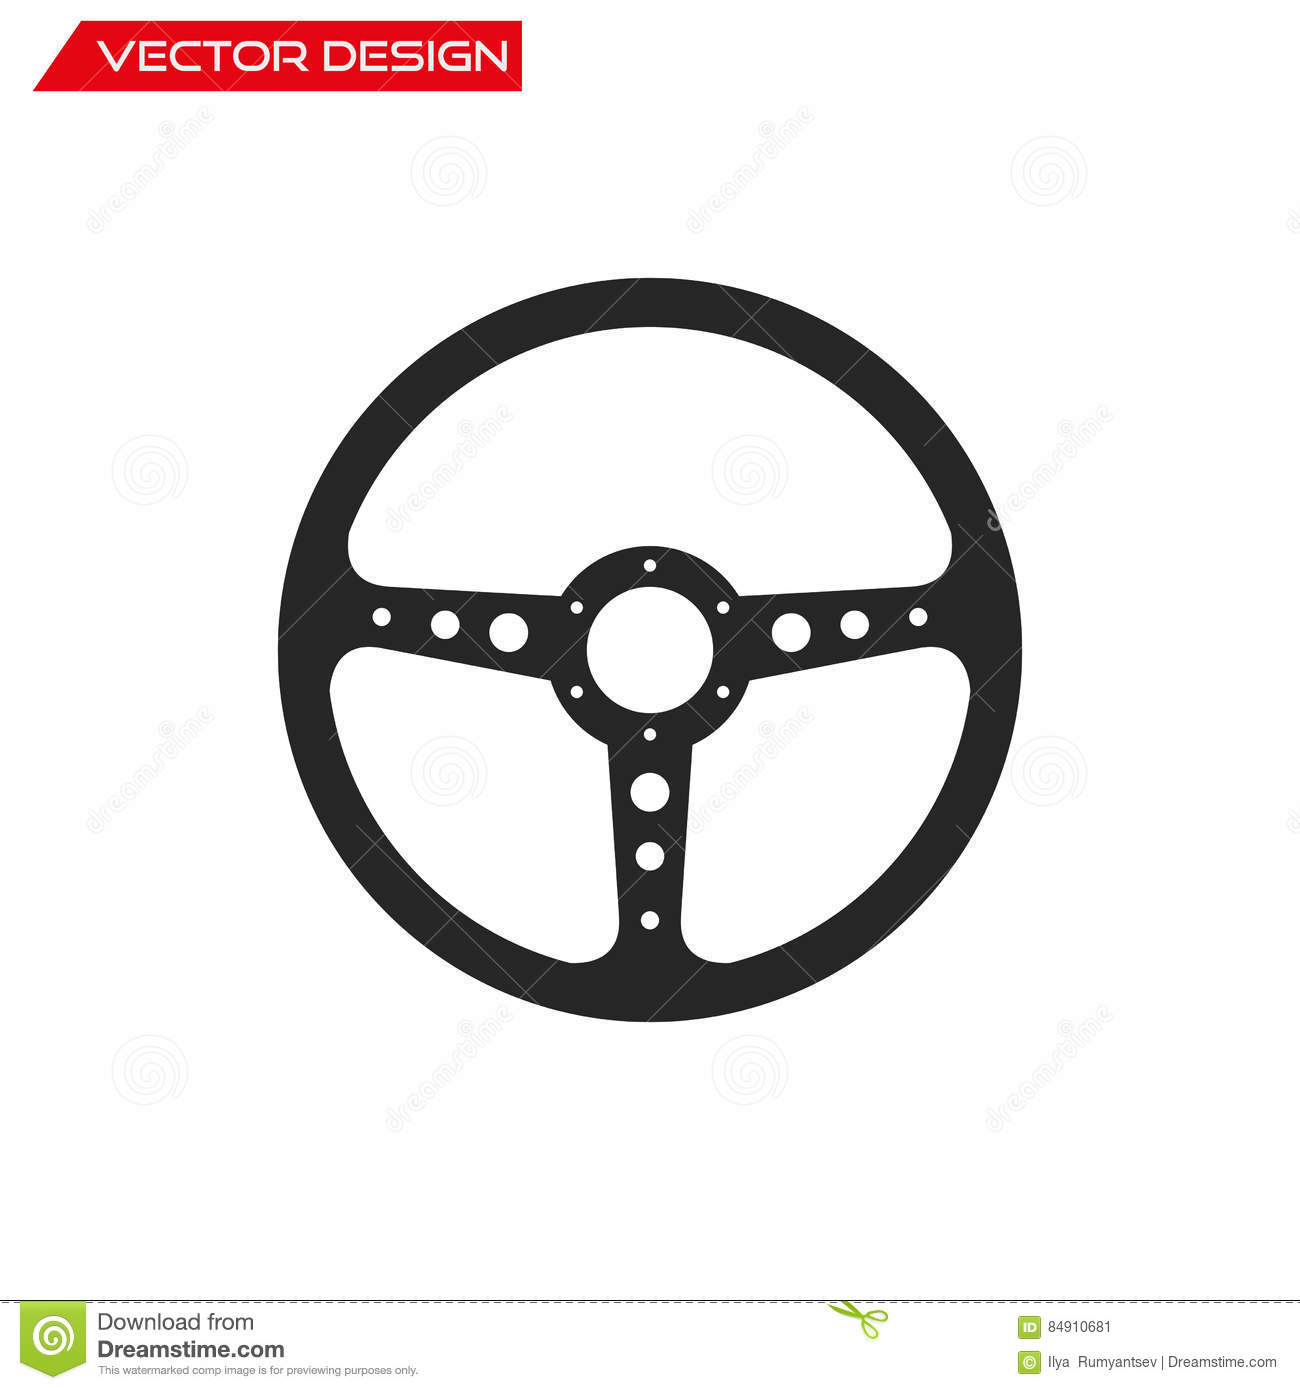 25+ Steering Wheel Vector Image